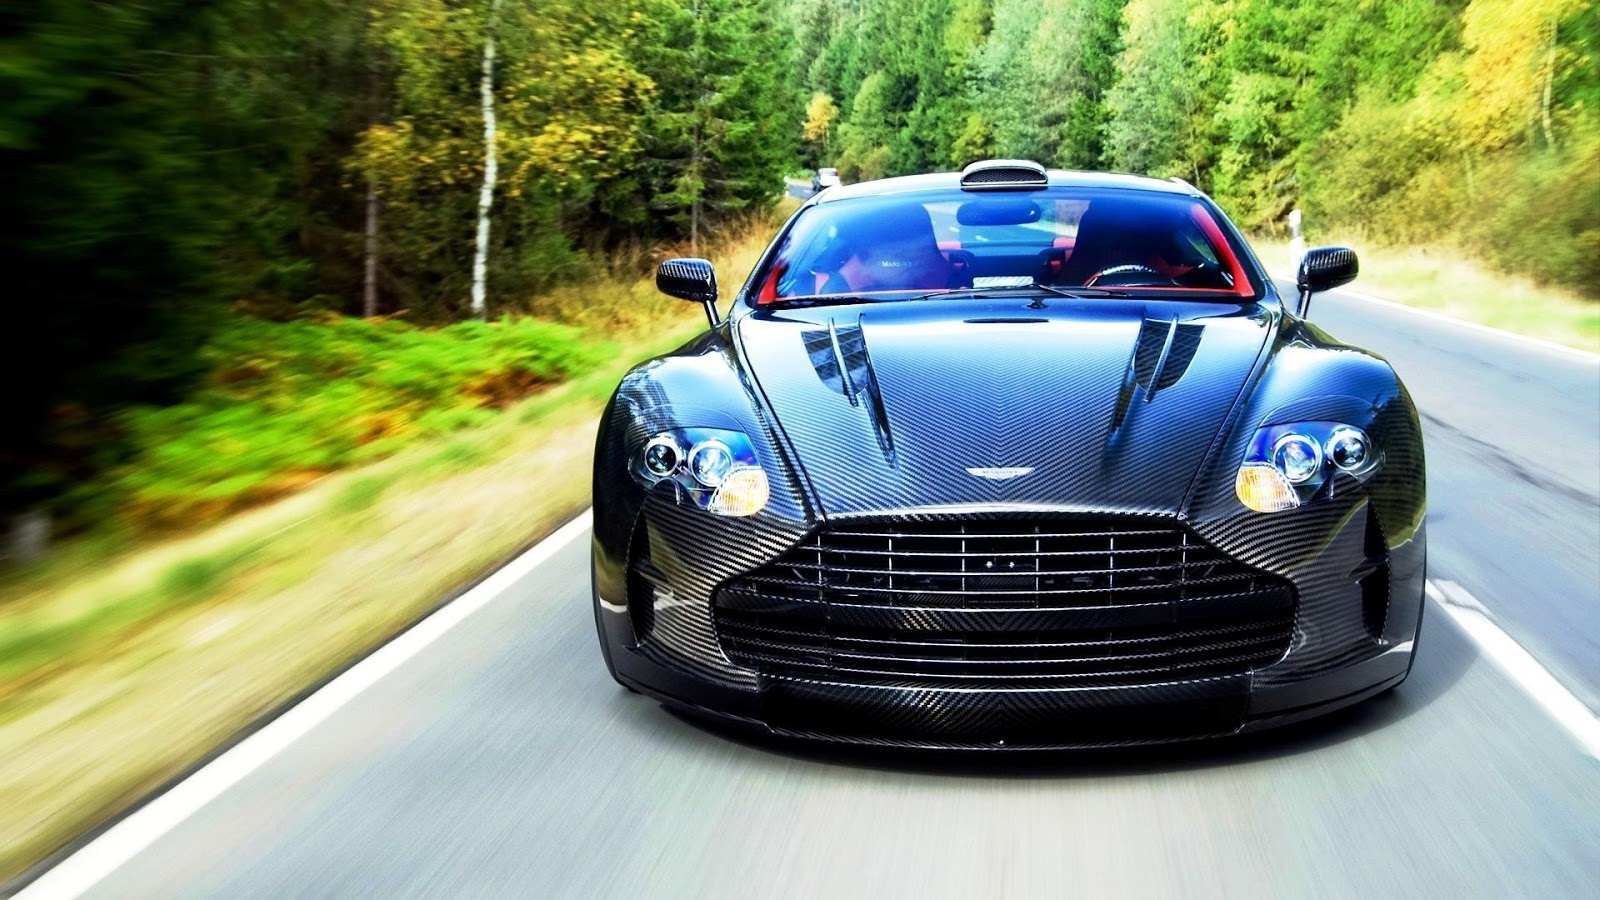 aston martin dbs carbon black edition 2013 car information news reviews videos photos. Black Bedroom Furniture Sets. Home Design Ideas